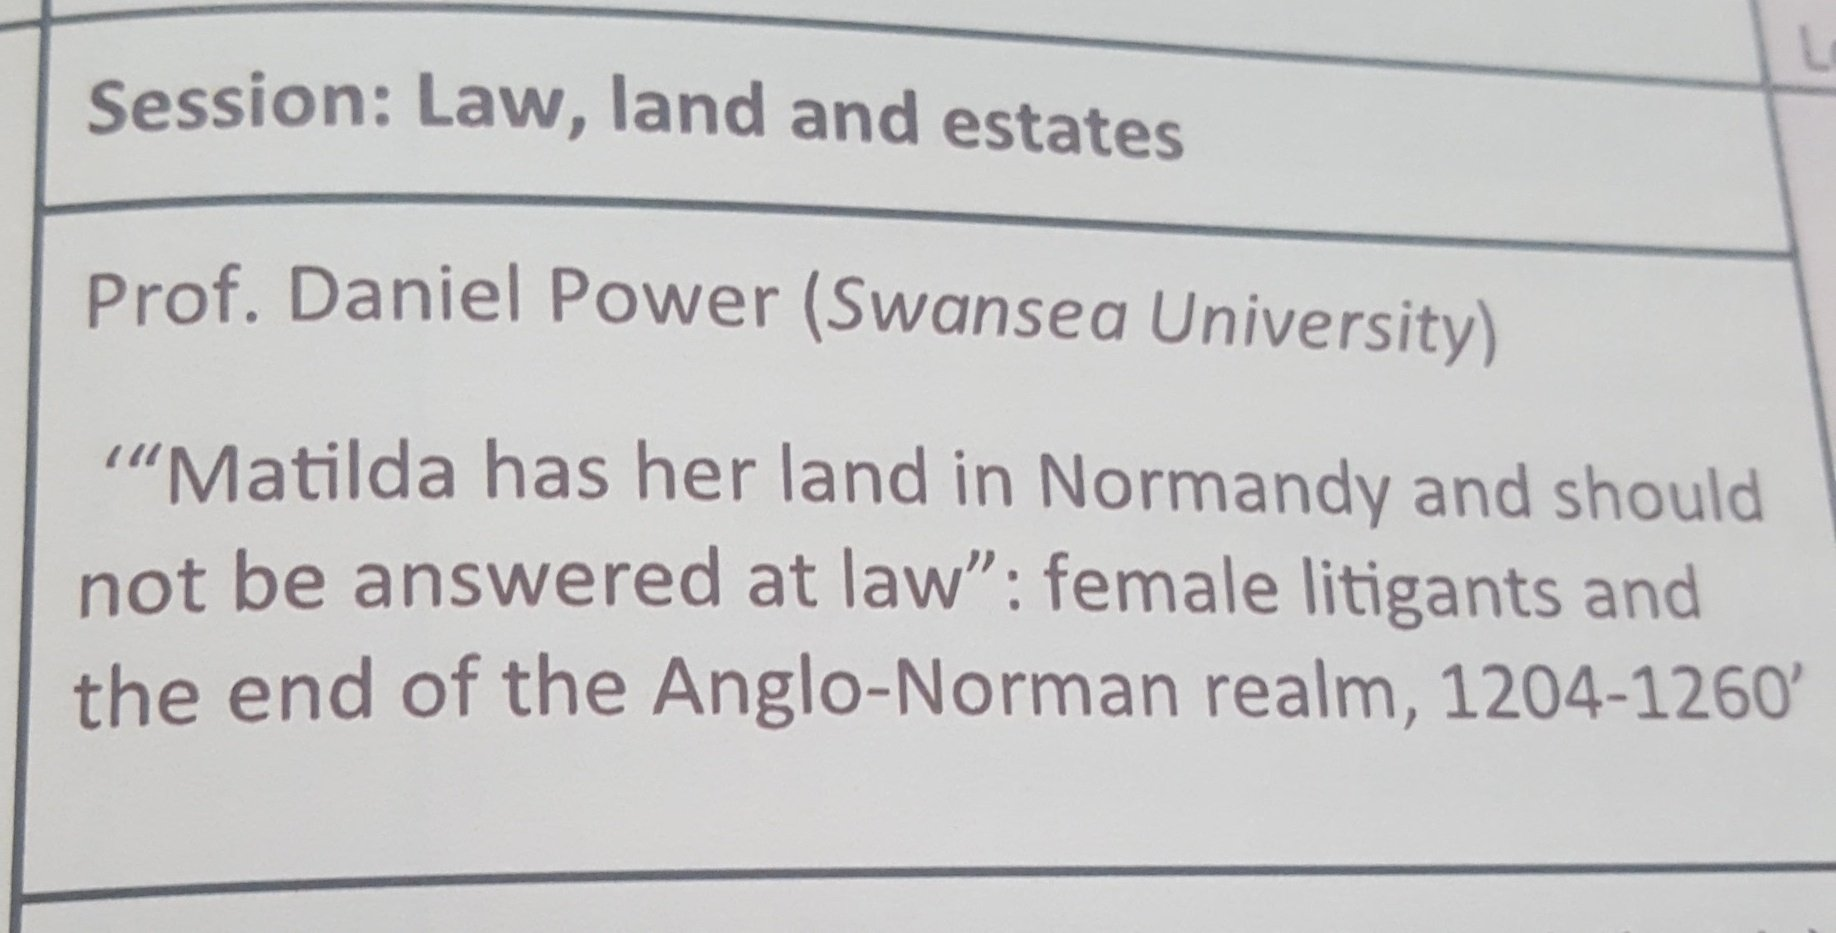 Daniel Power: wmn successful in keeping land in bth England and Normandy because inheritance, widowhood, less of threat #litigatingwomen https://t.co/jhKAzfAkwj